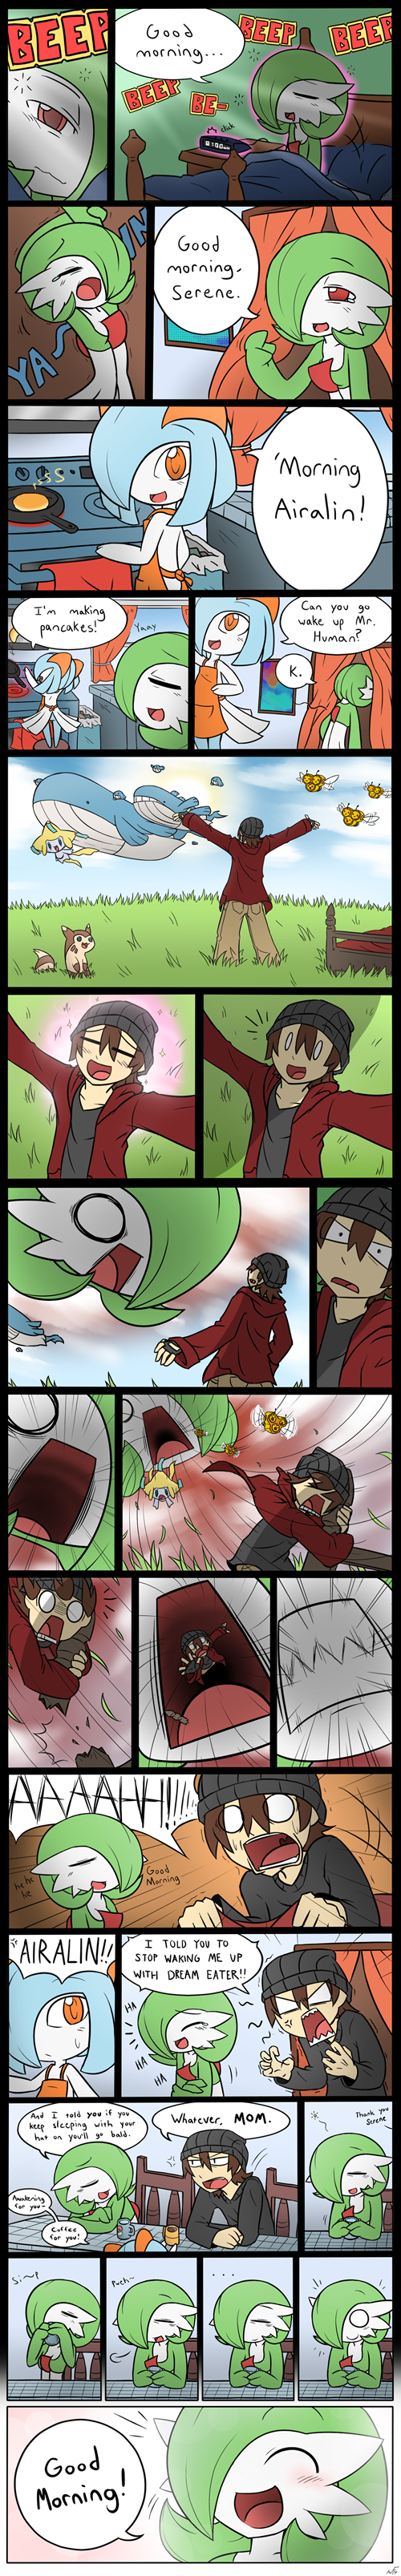 Pokémon dream eater gardevoir web comics - 8453562880